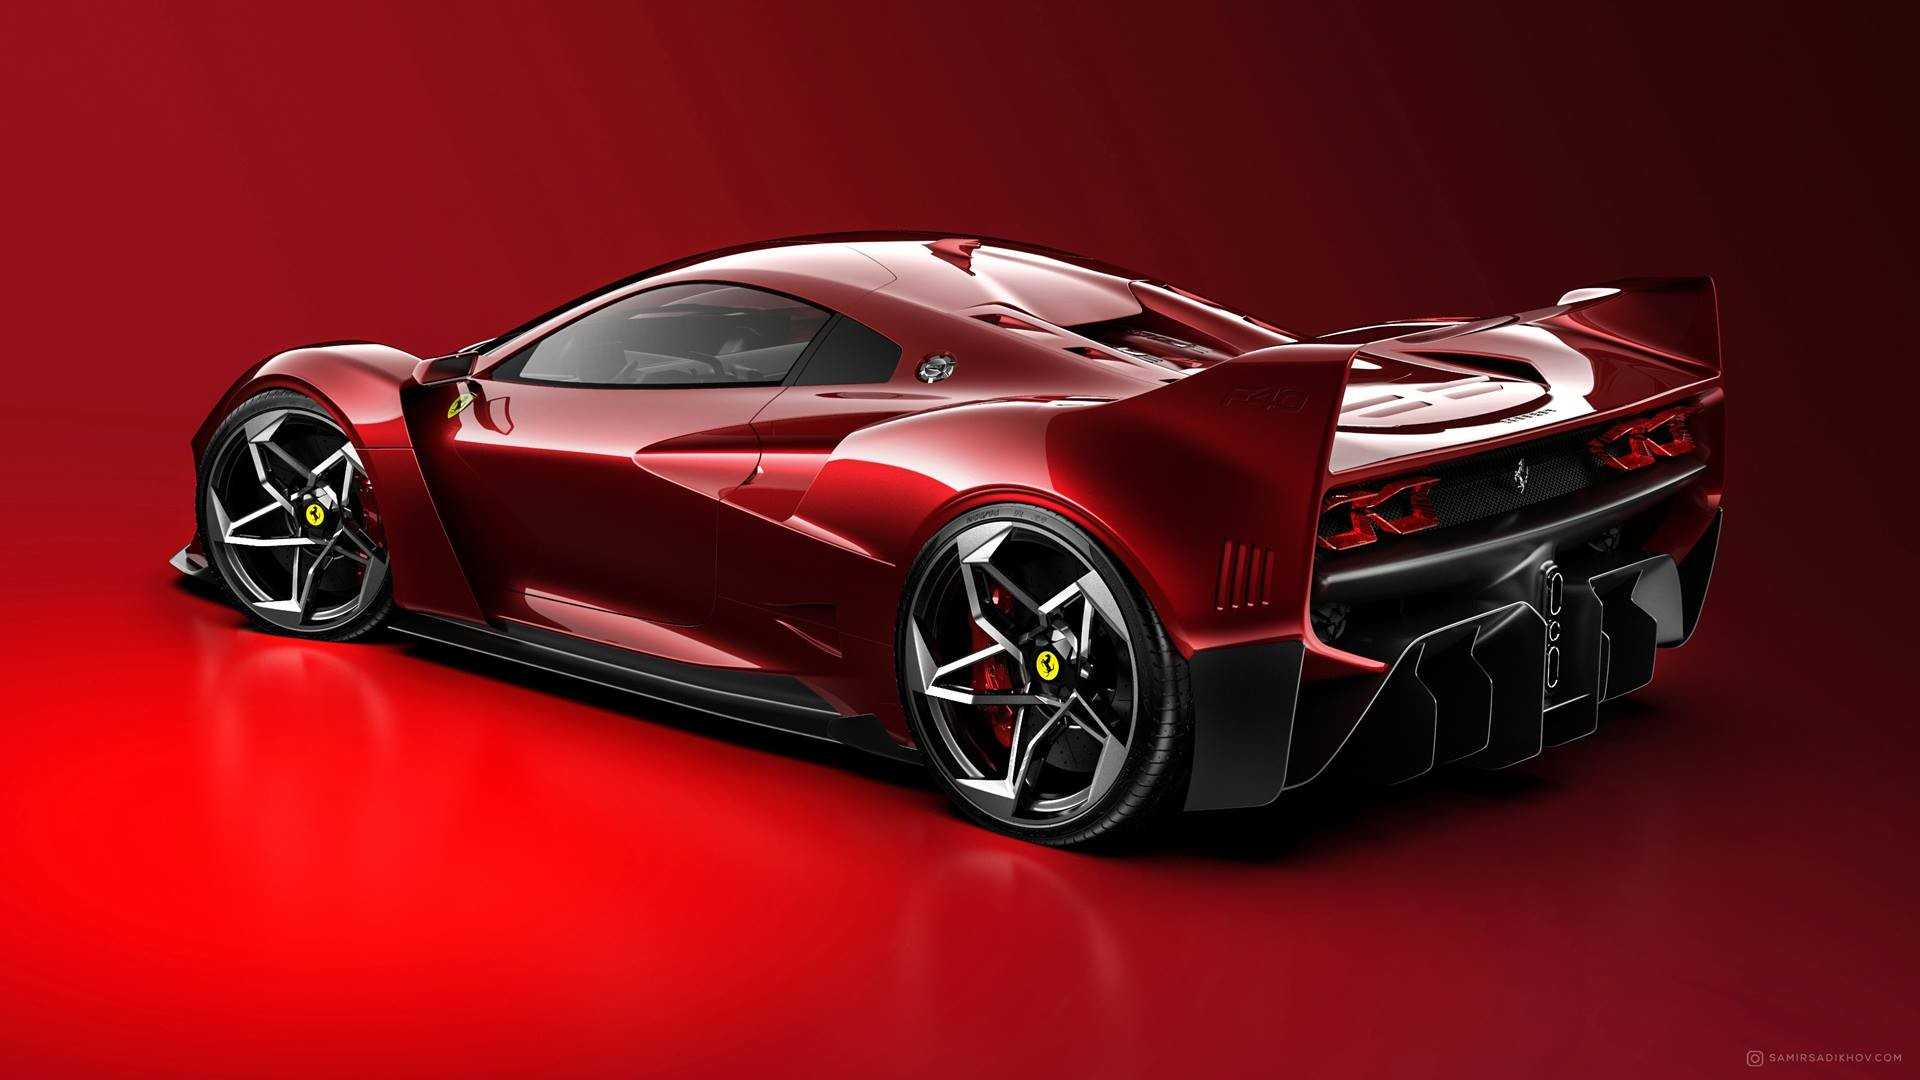 90 The Best 2020 Ferrari Cars Price And Review